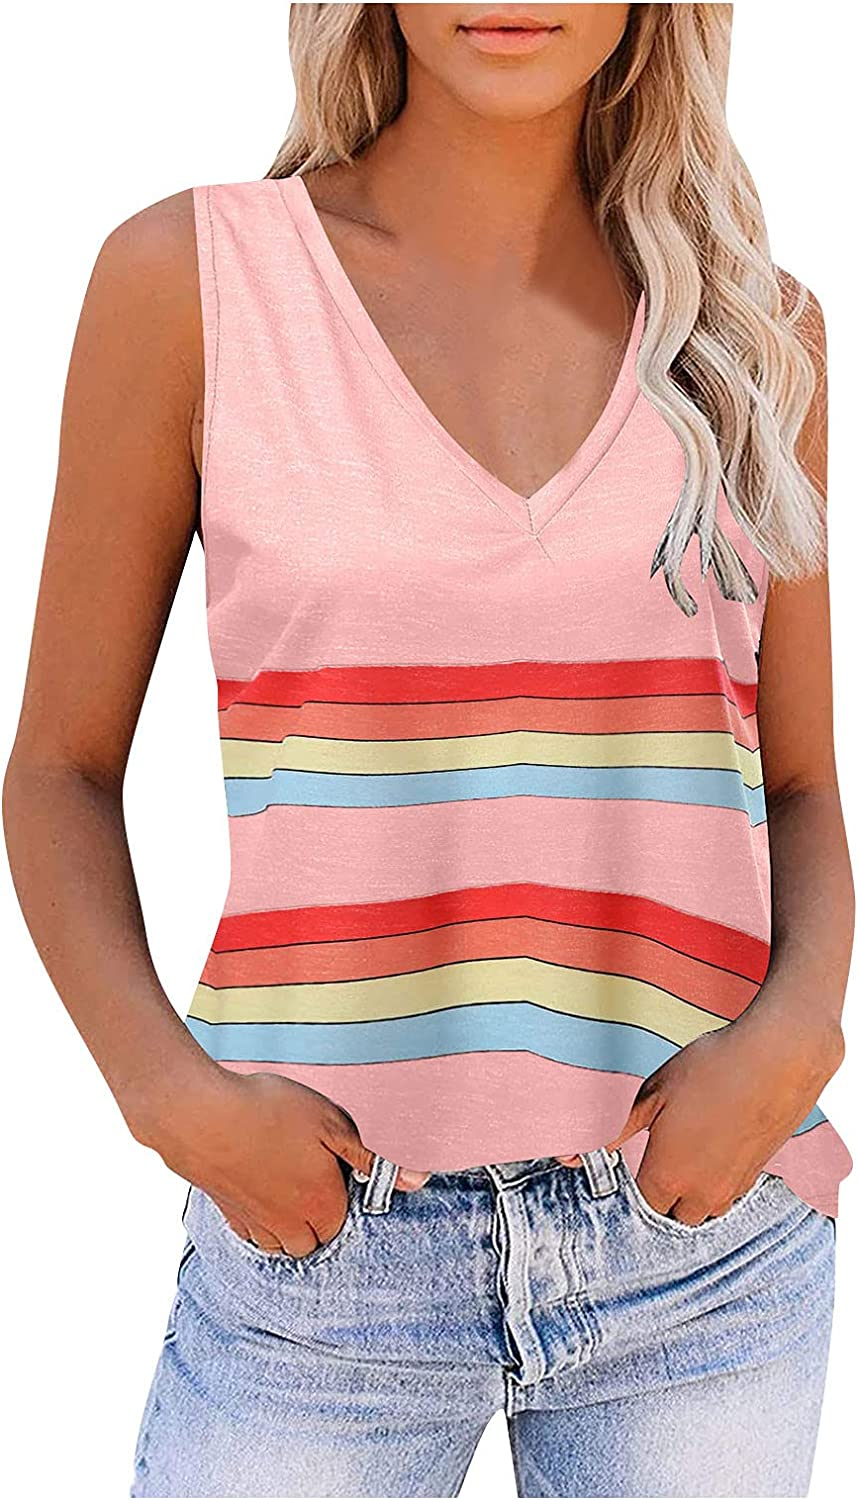 Womens Summer Tops Loose Fit,Women's V Neck Basic Tank Tops Casual Loose Sleeveless Color Block Shirts